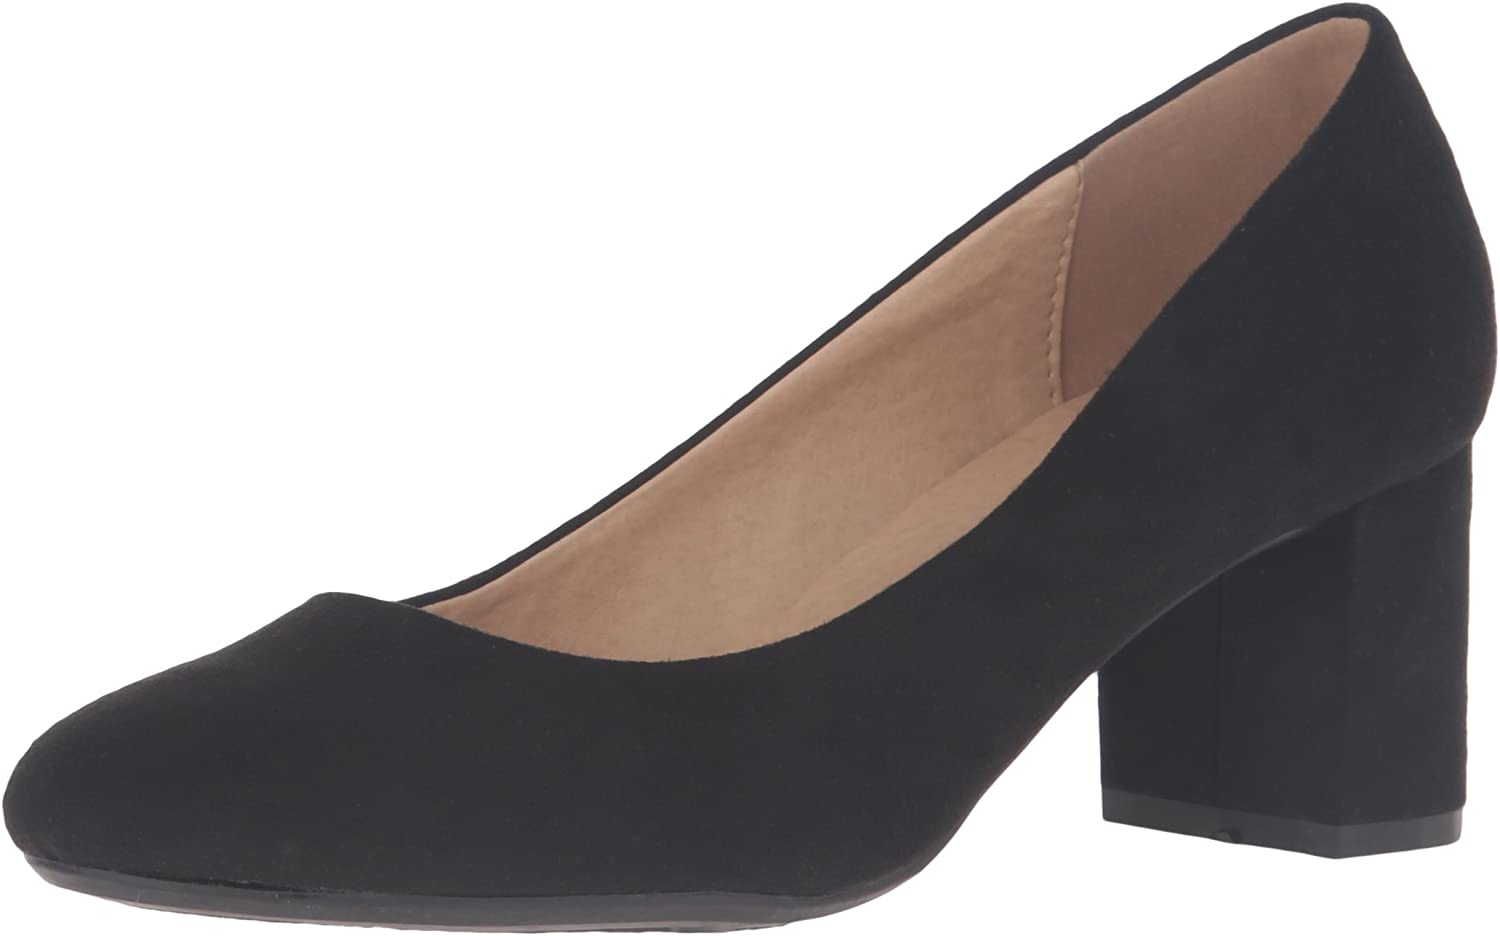 CL by Chinese Laundry Women's Ada Dress Pump